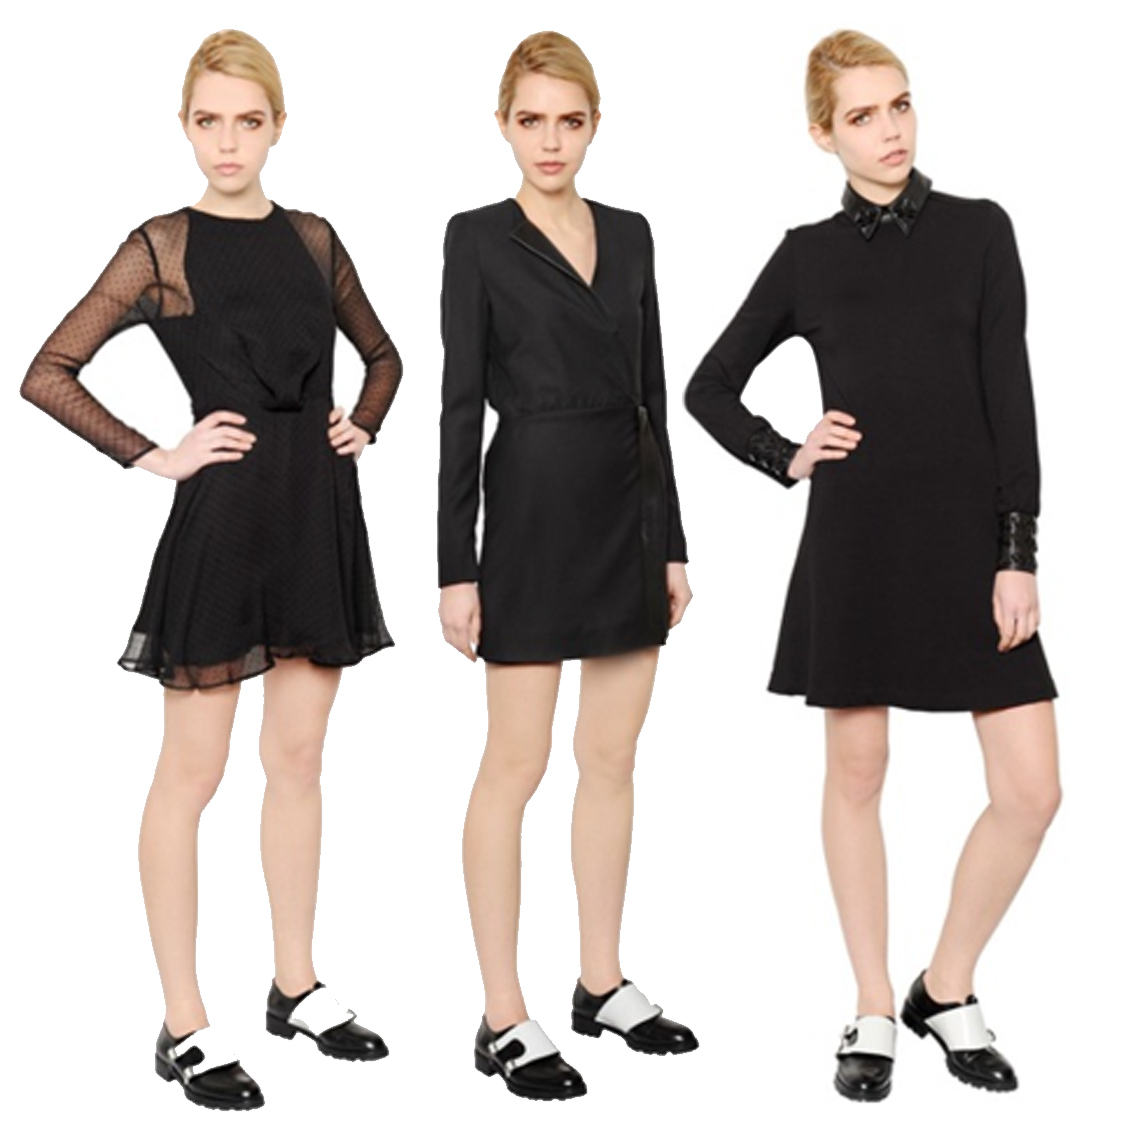 karl lagerfeld1 Rent Karl Lagerfeld Dresses at Girl Meets Dress